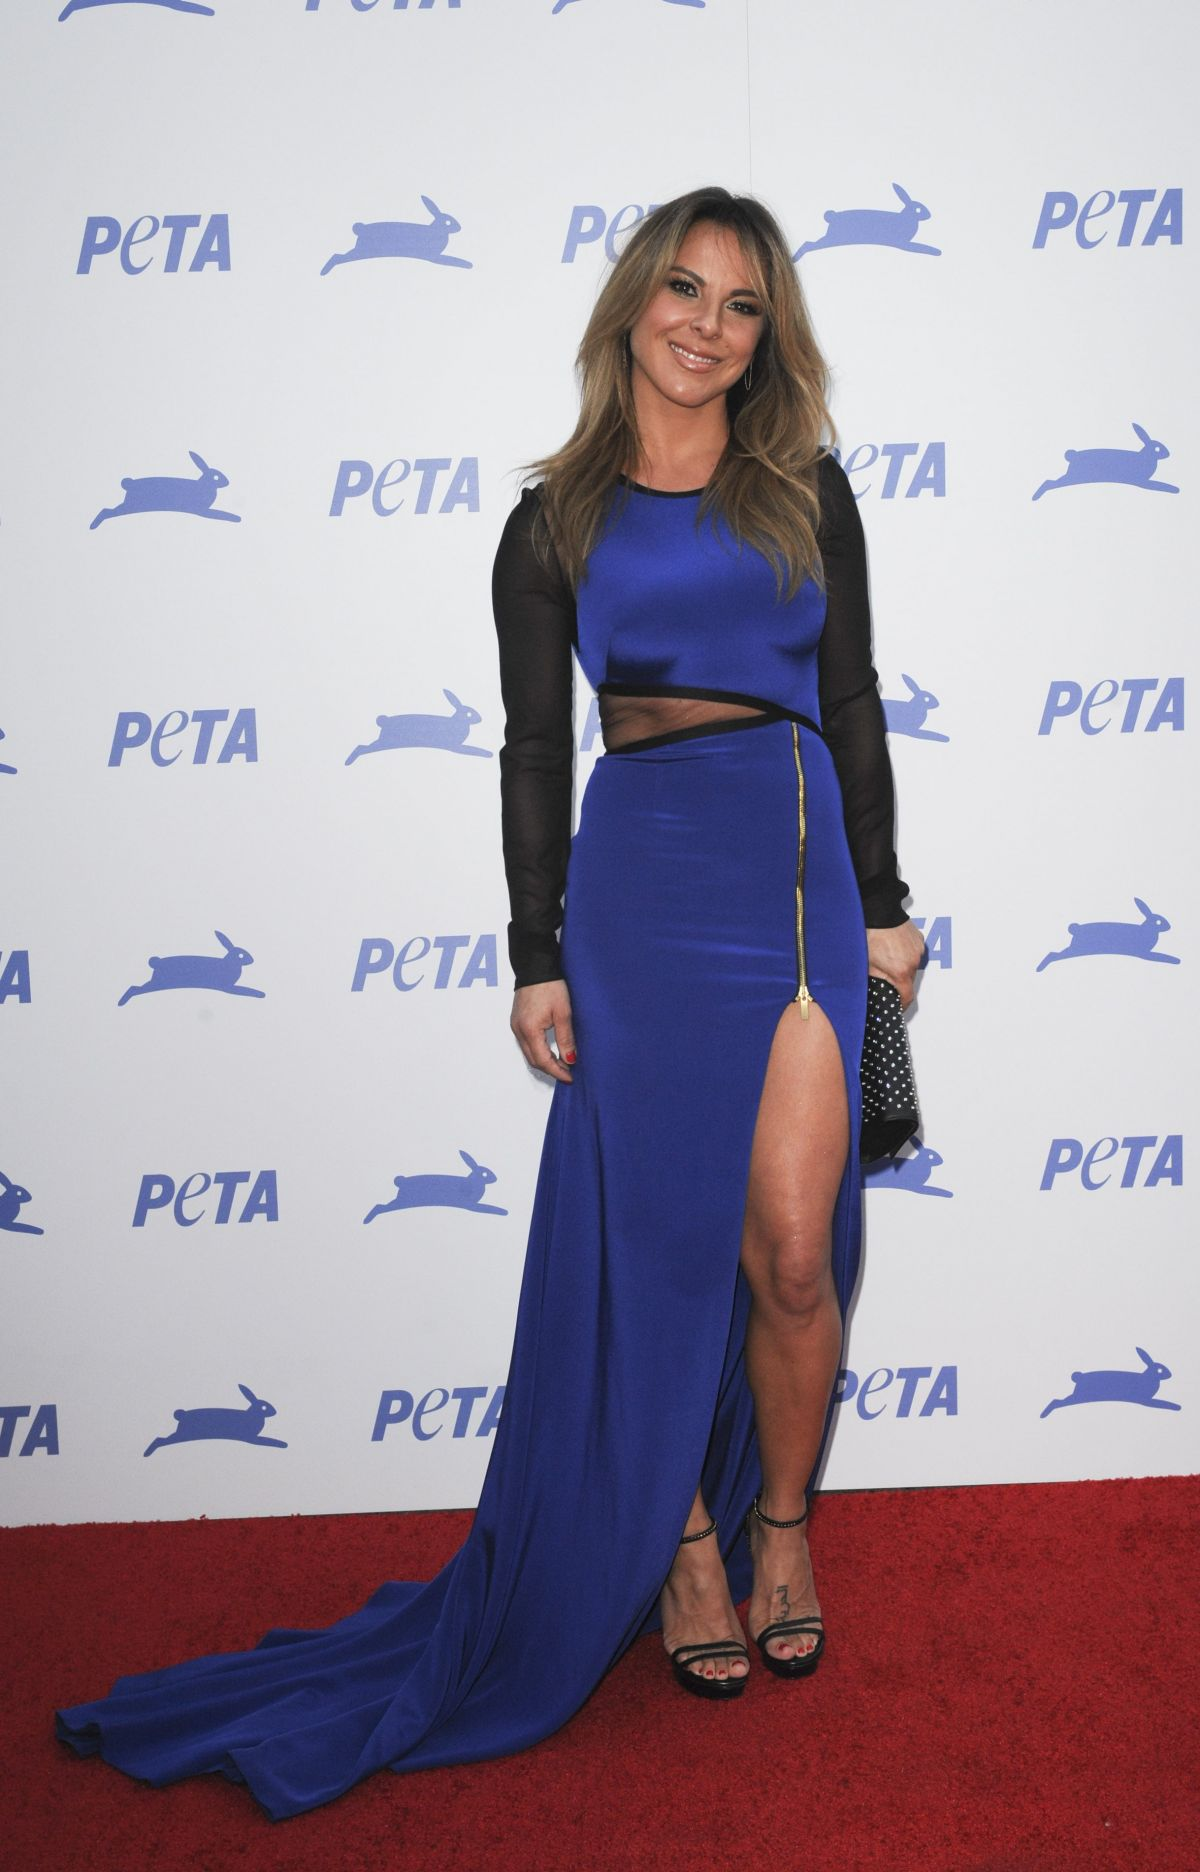 KATE DEL CASTILLO at Peta's 35th Anniversary Party in Los Angeles 09/30/2015